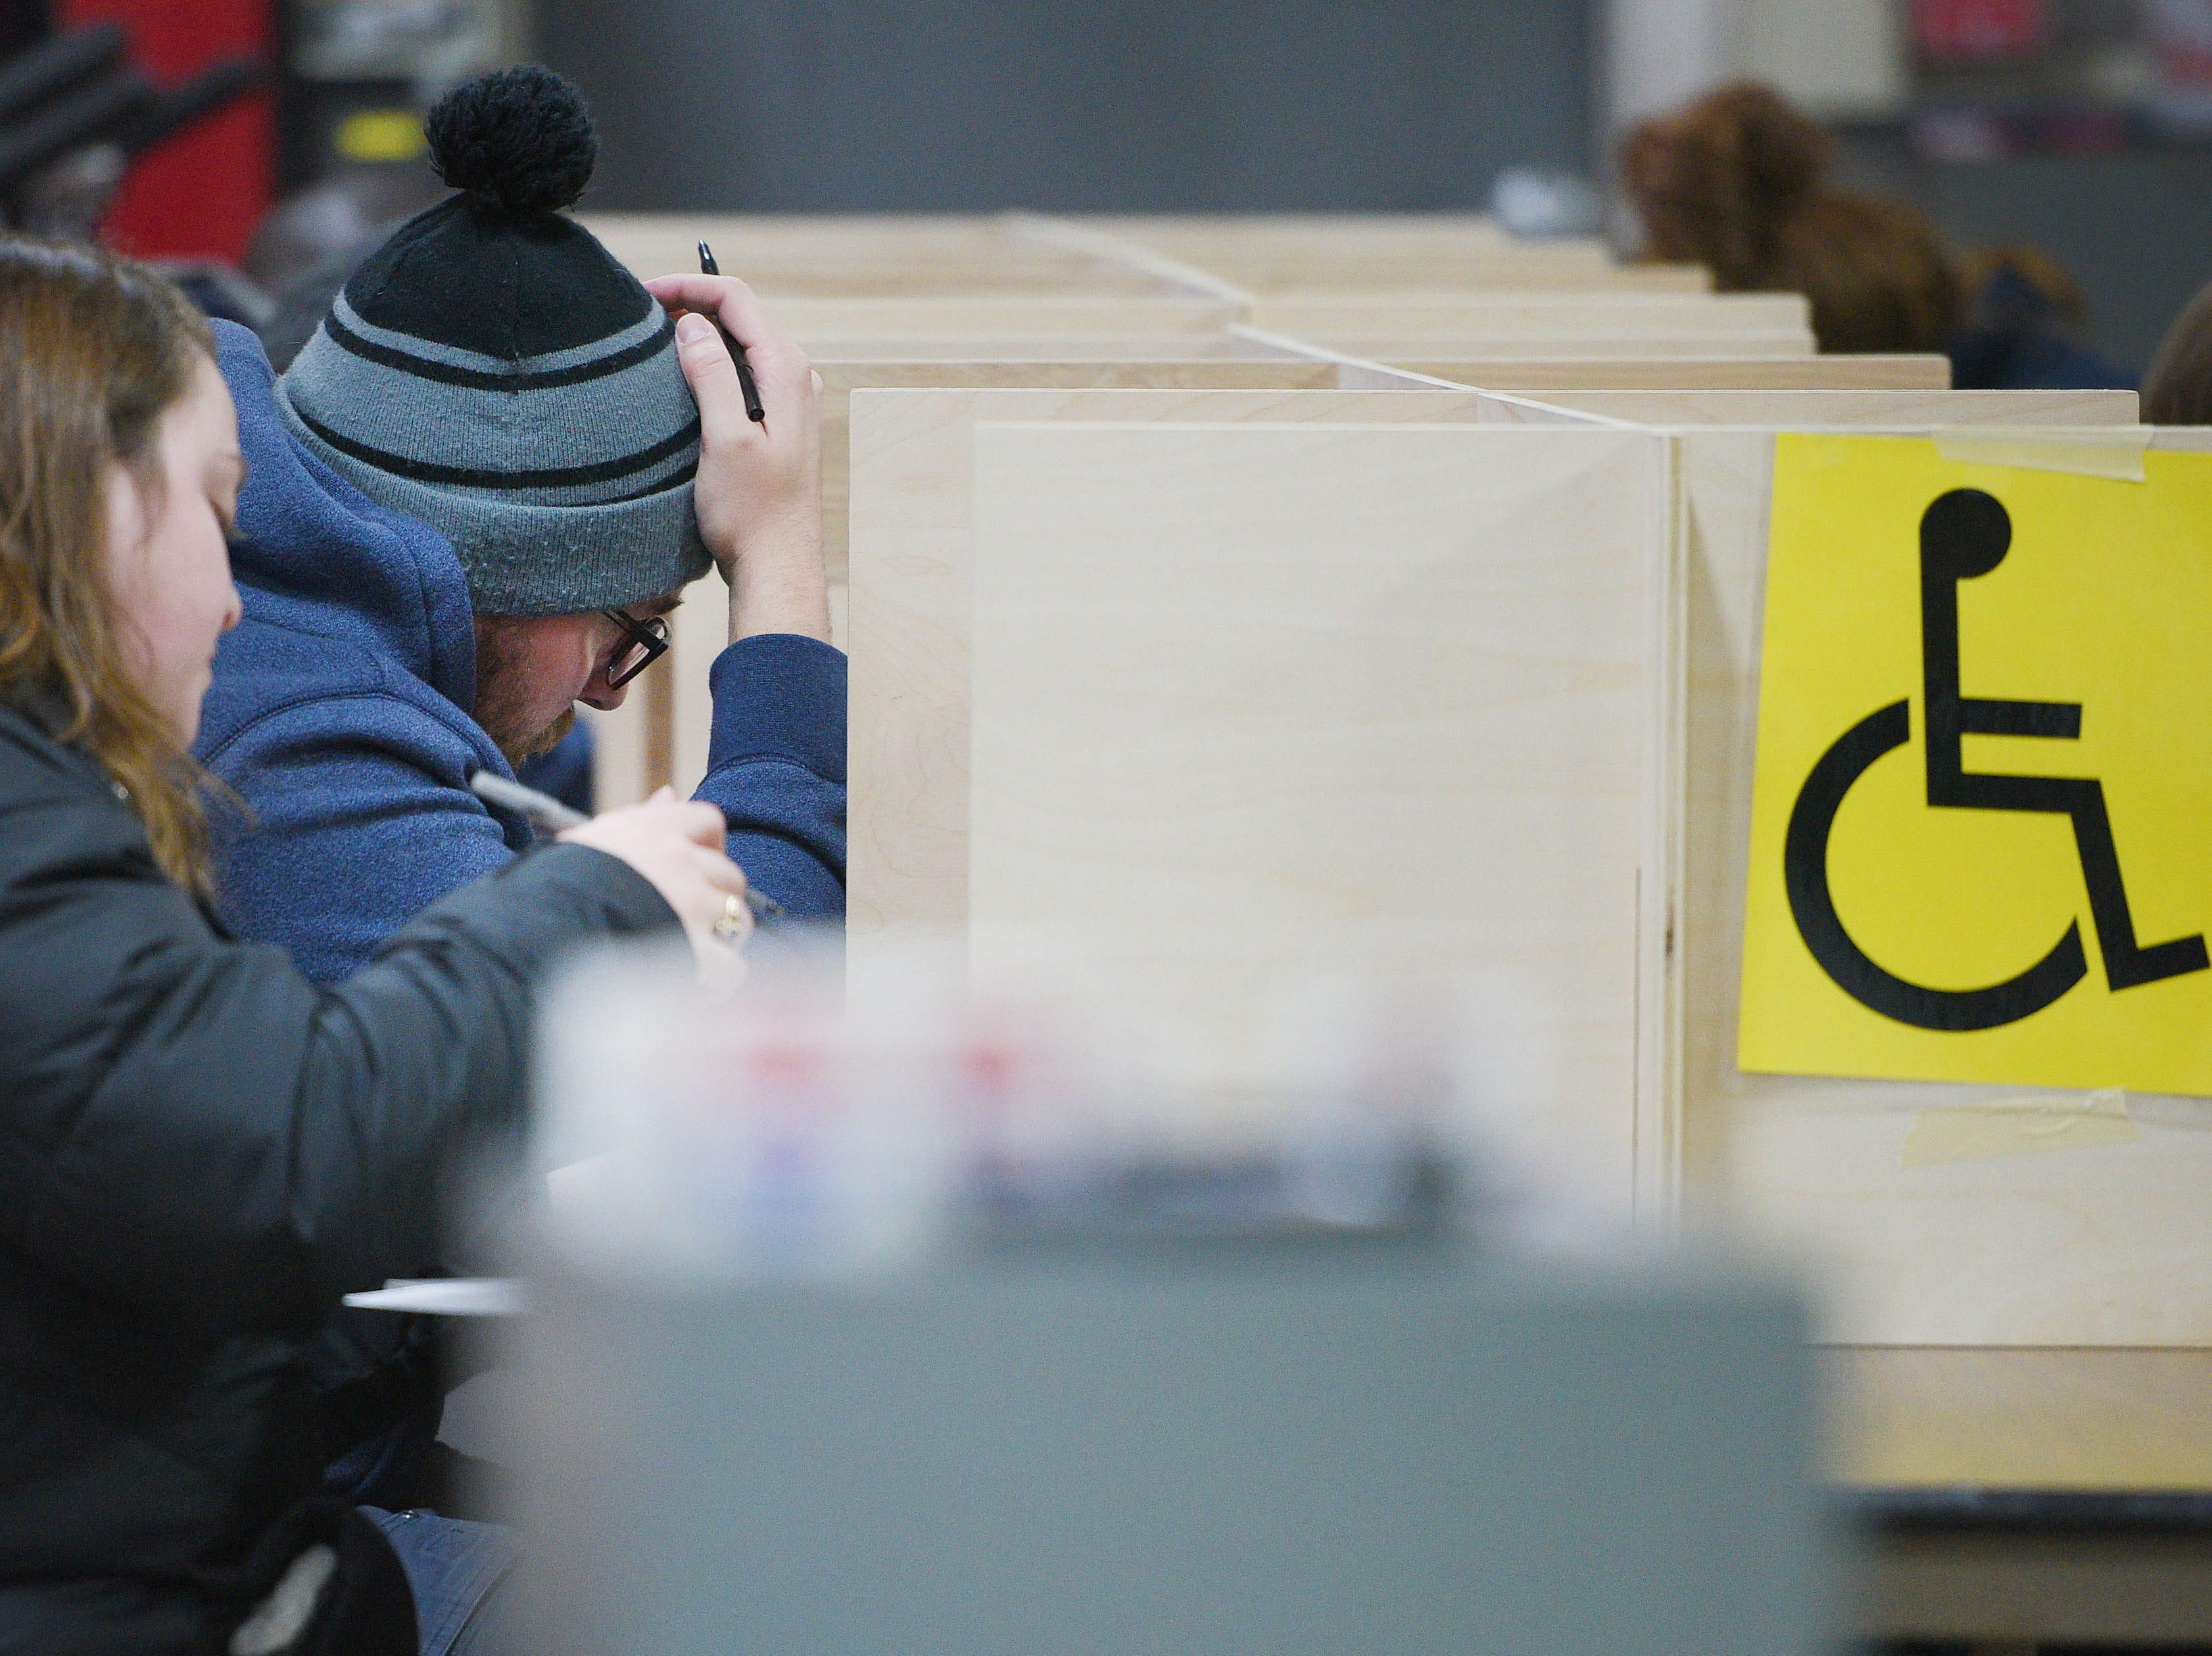 Douglas Wichern votes in the 2018 midterm elections Tuesday, Nov. 6, at Fire Station #7 in Sioux Falls.